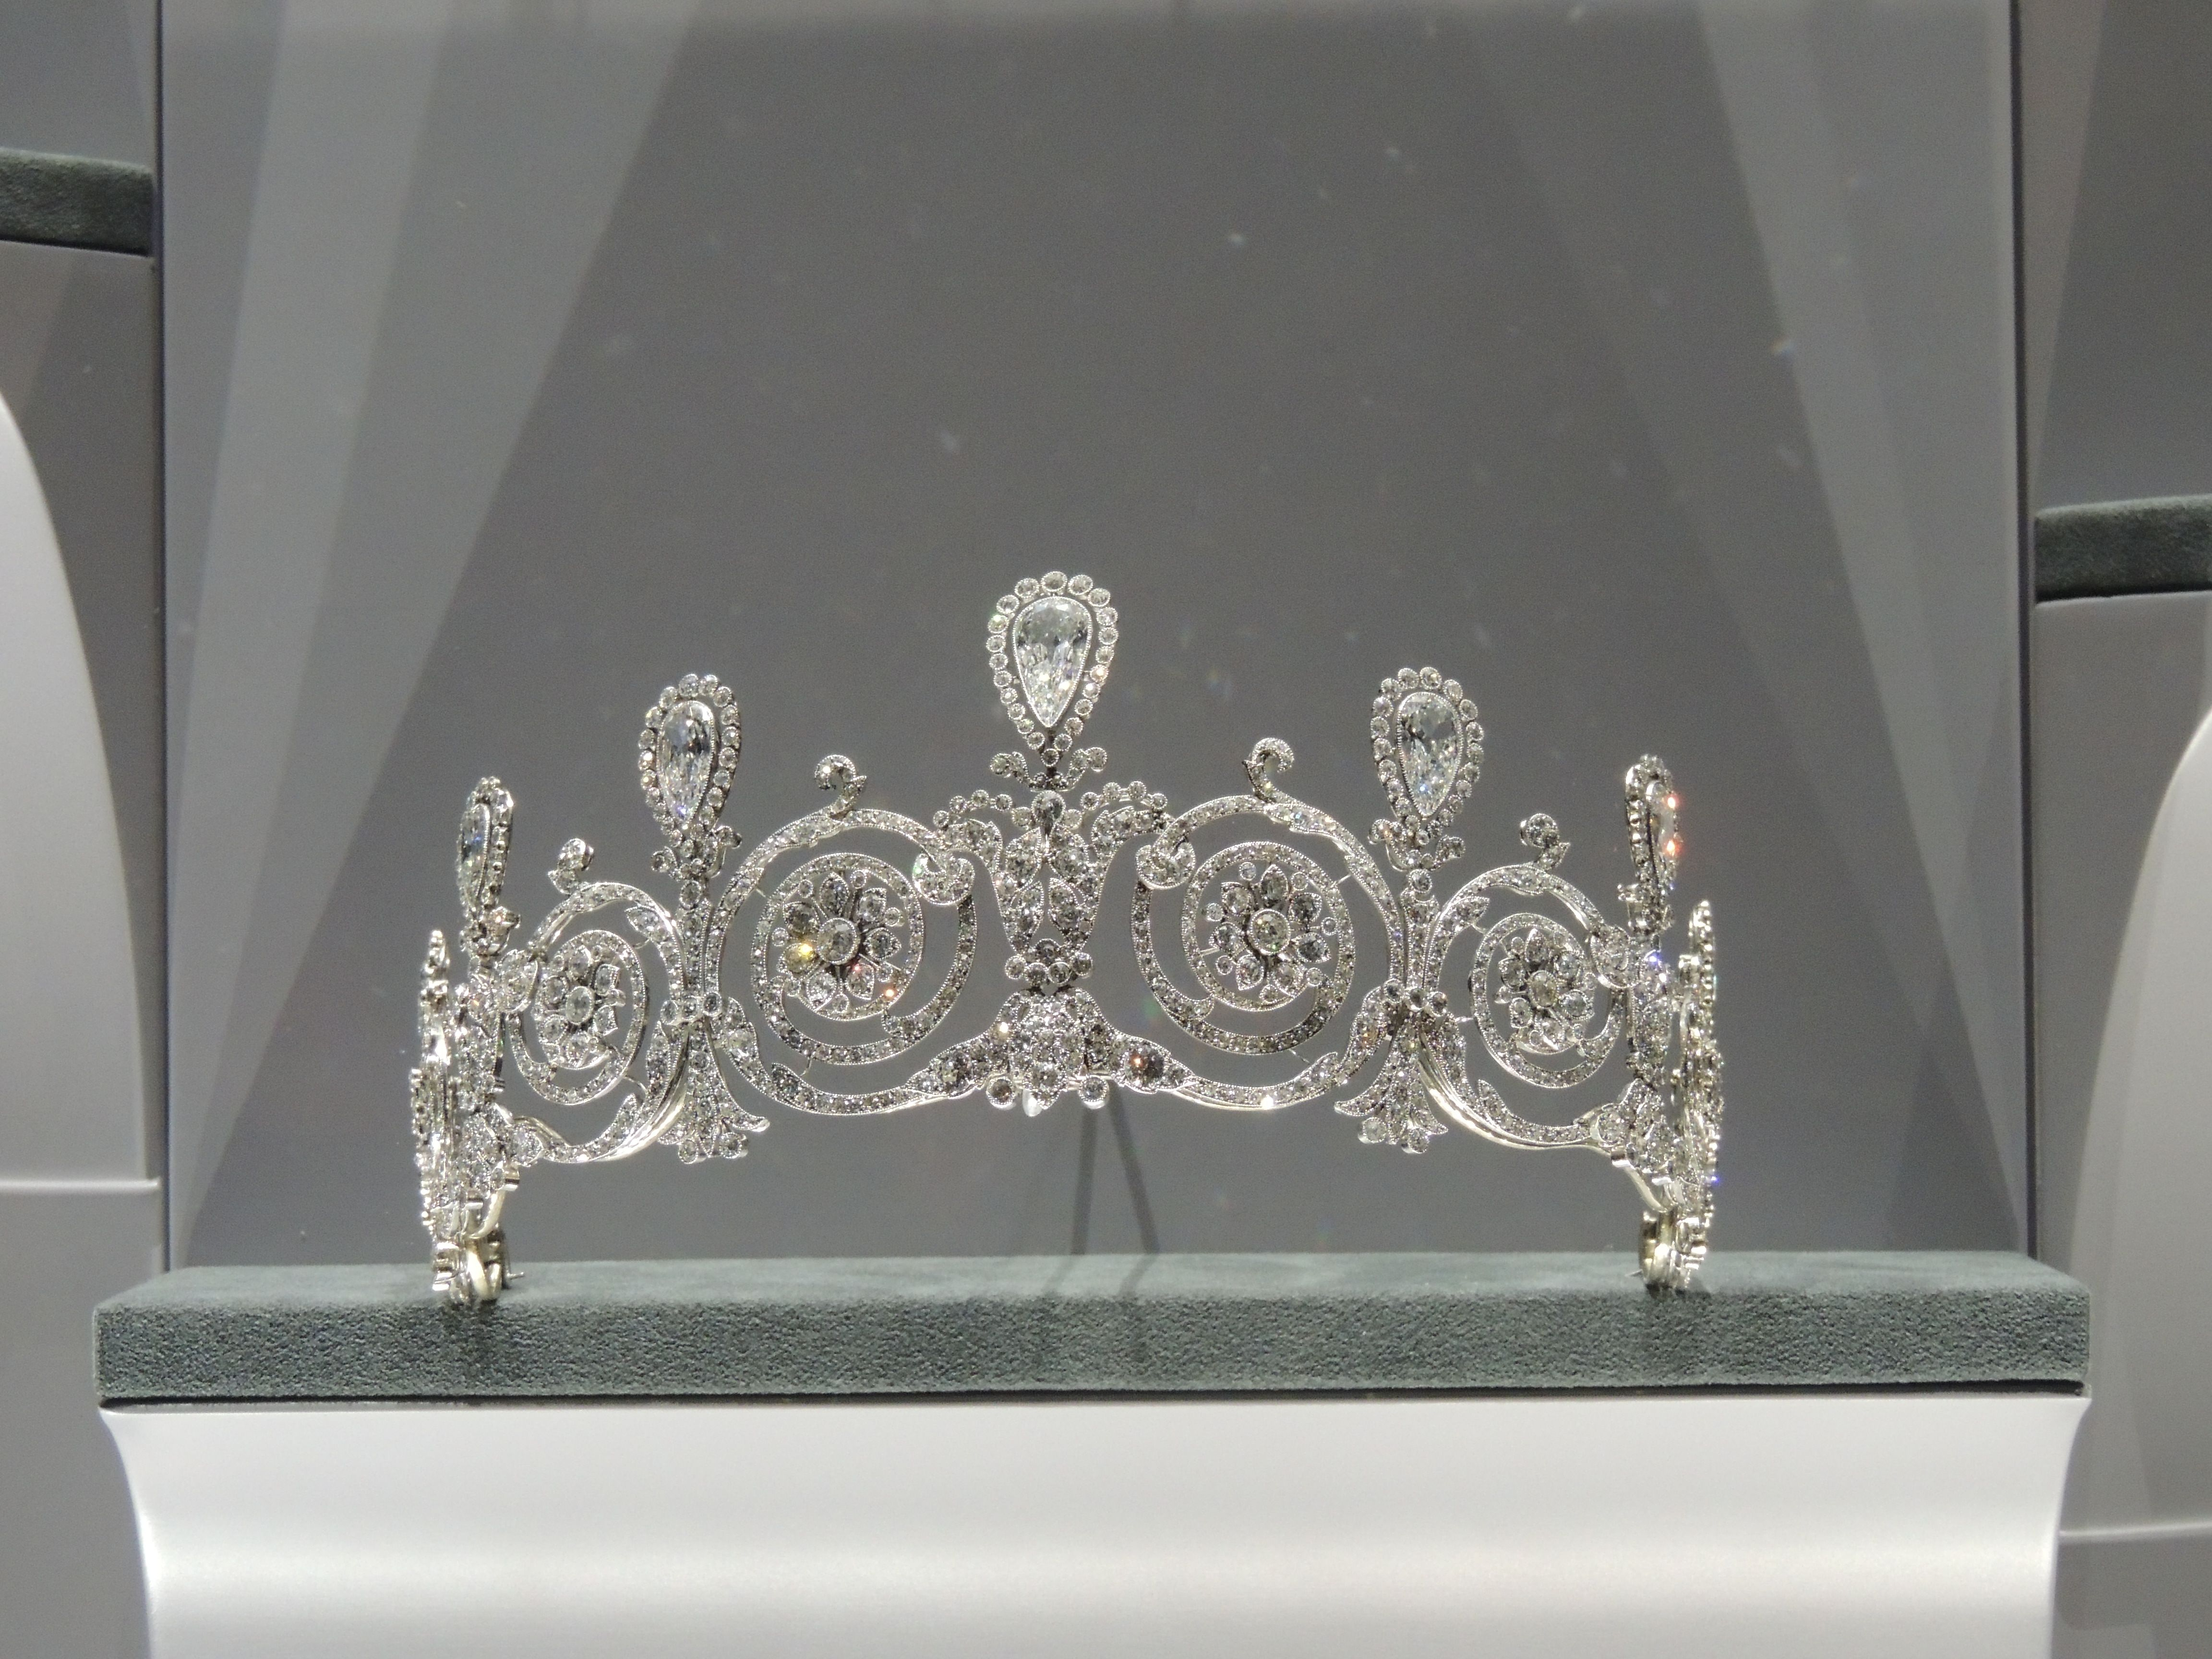 The Townsend Tiara. Cartier, Paris, 1905, platinum, seven pear-shaped diamonds weighing approximately 17 carats in total, old and rose-cut diamonds, millegrain setting.